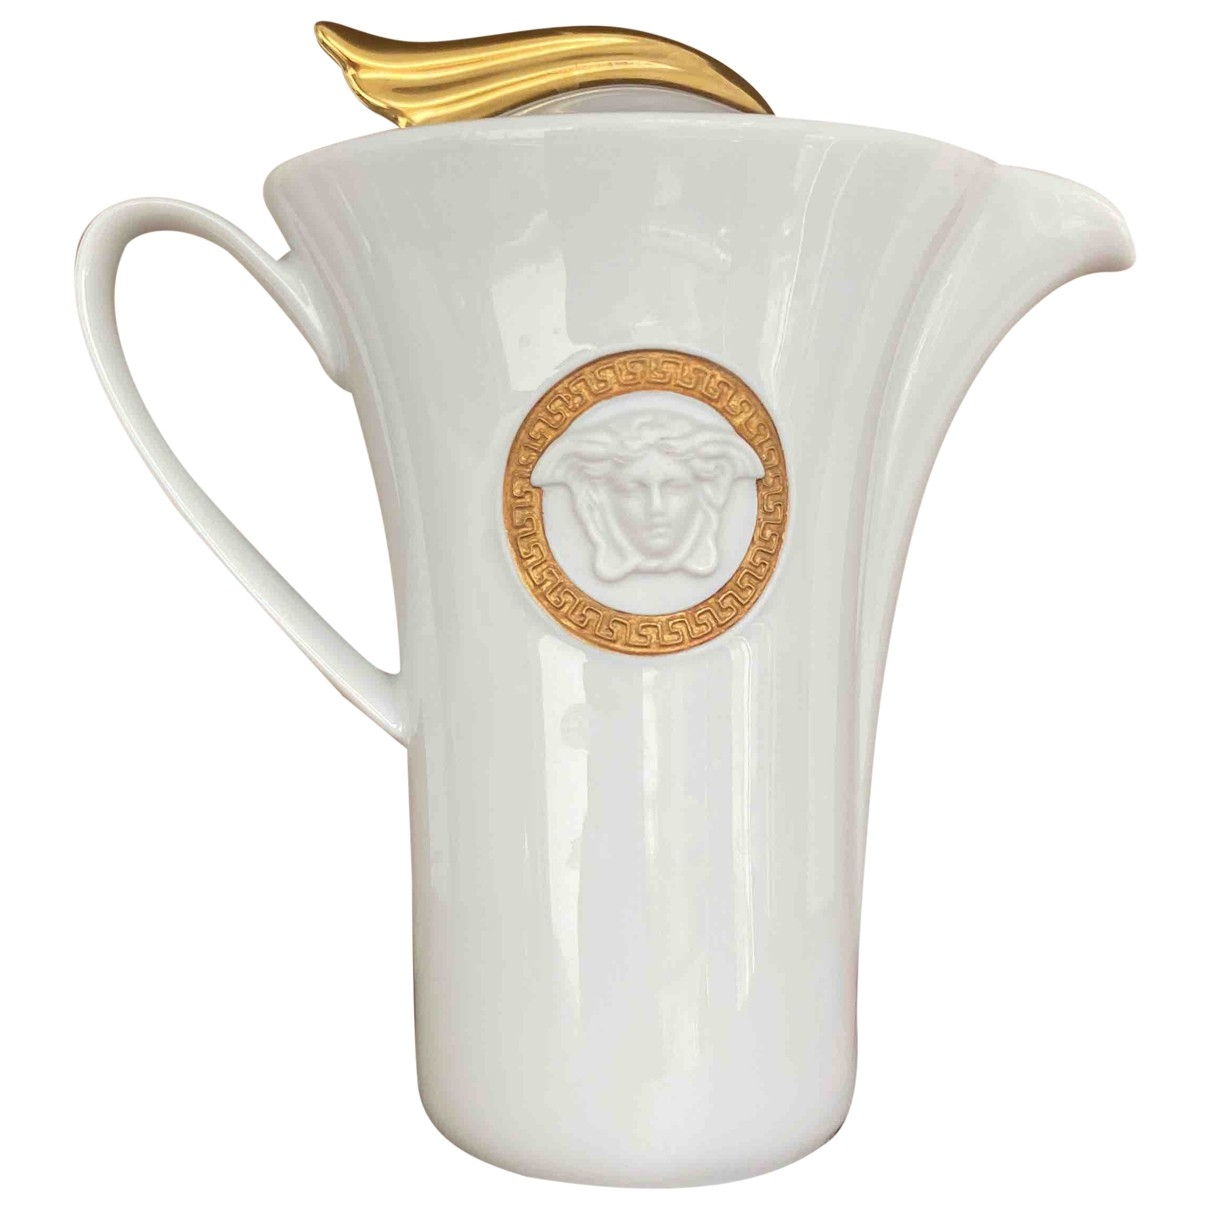 Versace - Arts de la table   pour lifestyle en porcelaine - blanc